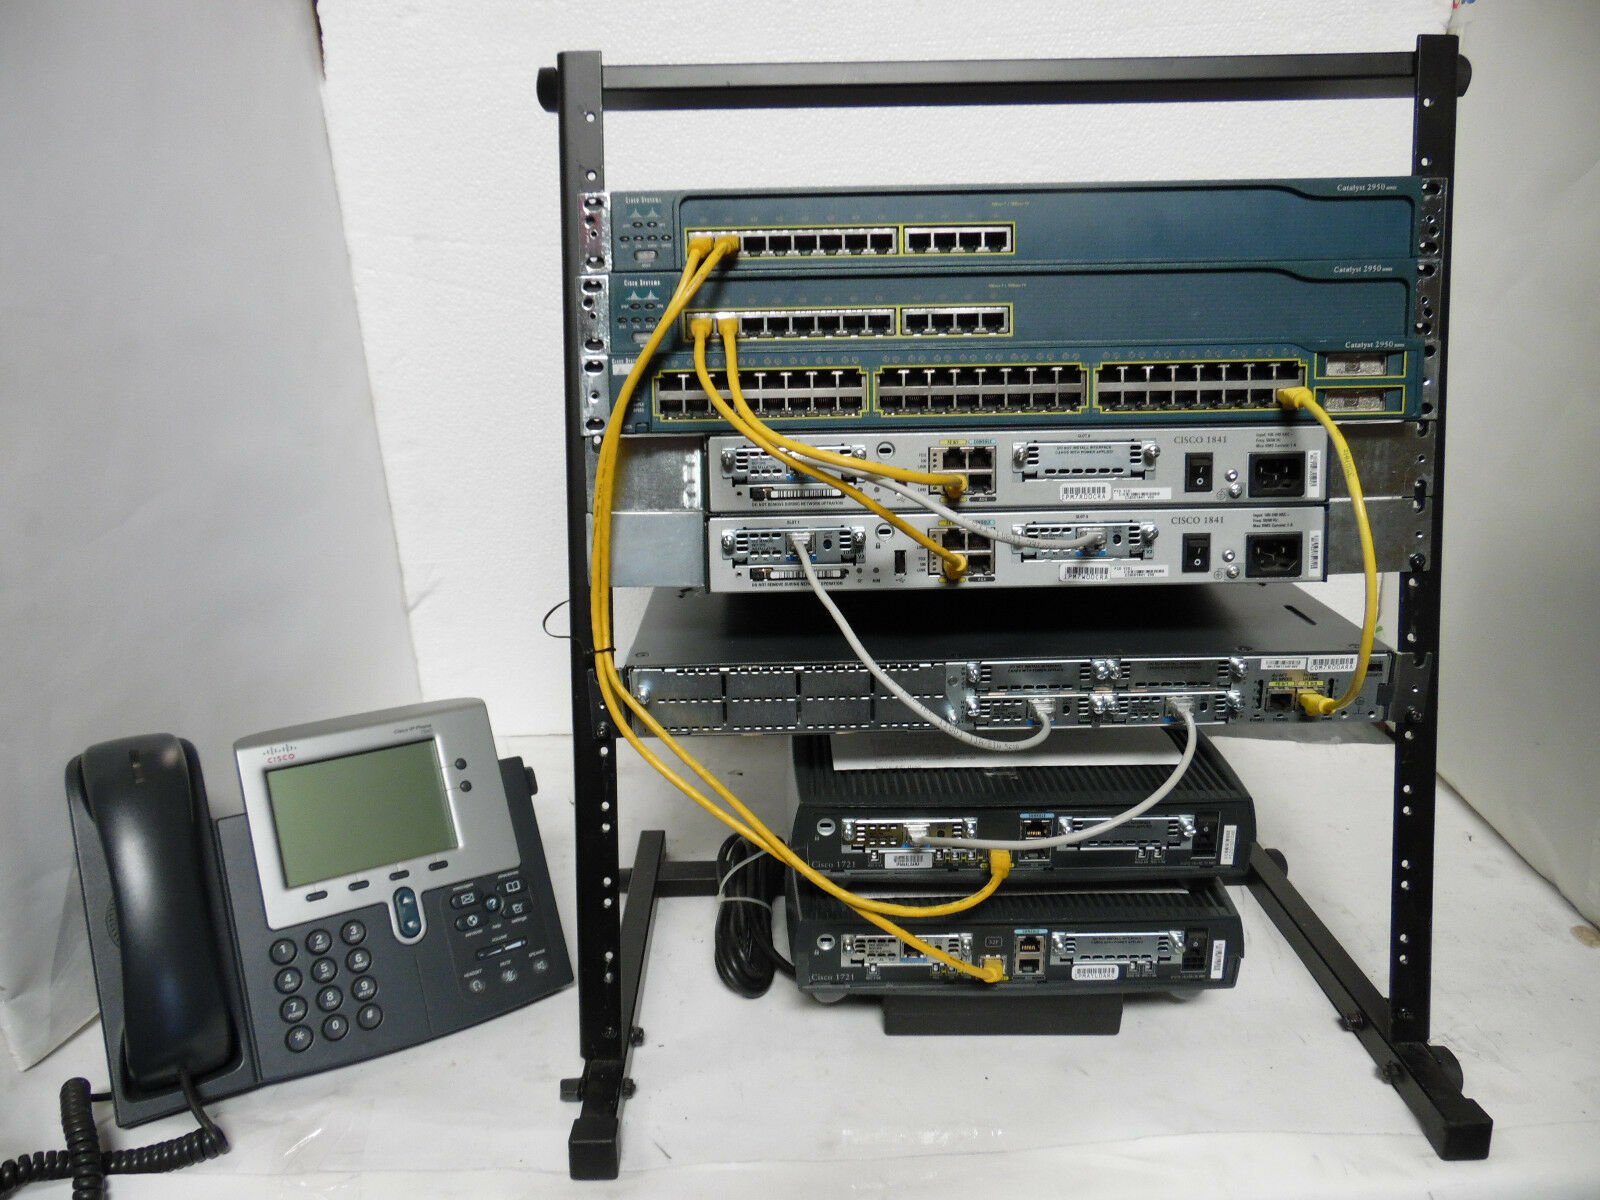 Cisco CCNA CCNP Lab Kit 1x1841IOS 15.1,2x 2600XM 2x 2960-24,3560 #1 Best Seller